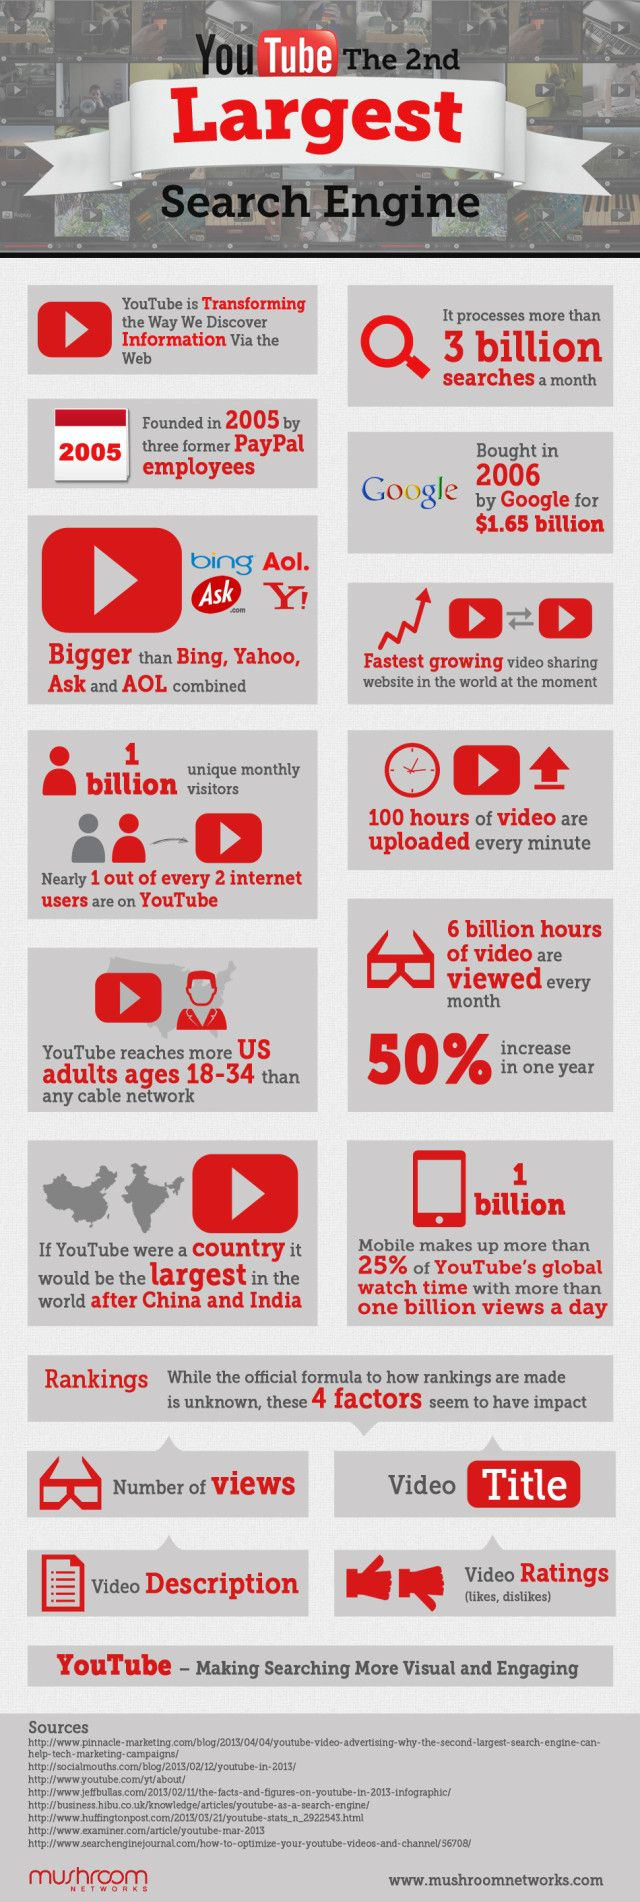 #YouTube , the 2nd largest search engine [infographic] via @Mary Powers Powers Lumley | BornToBeSocial